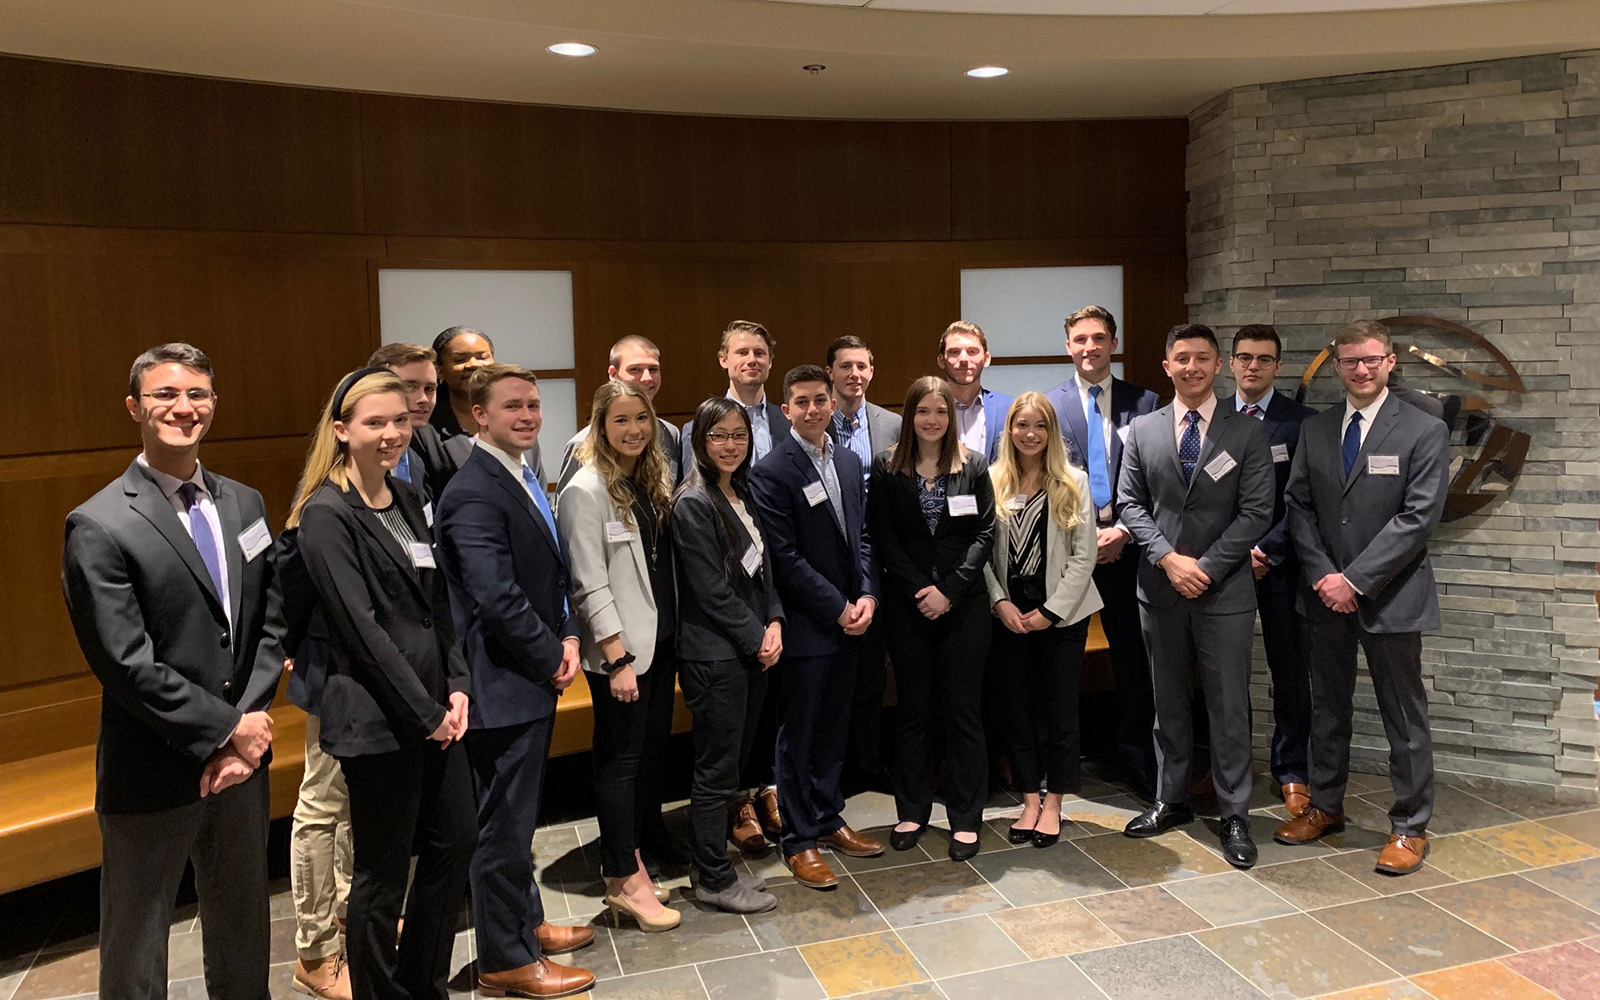 Second year students from UConn's School of Business pose during their visit to Prudential for the yearly Immersion Bootcamp, where students have an opportunity to fine tune skills in a real-time environment. (Contributed Photo)